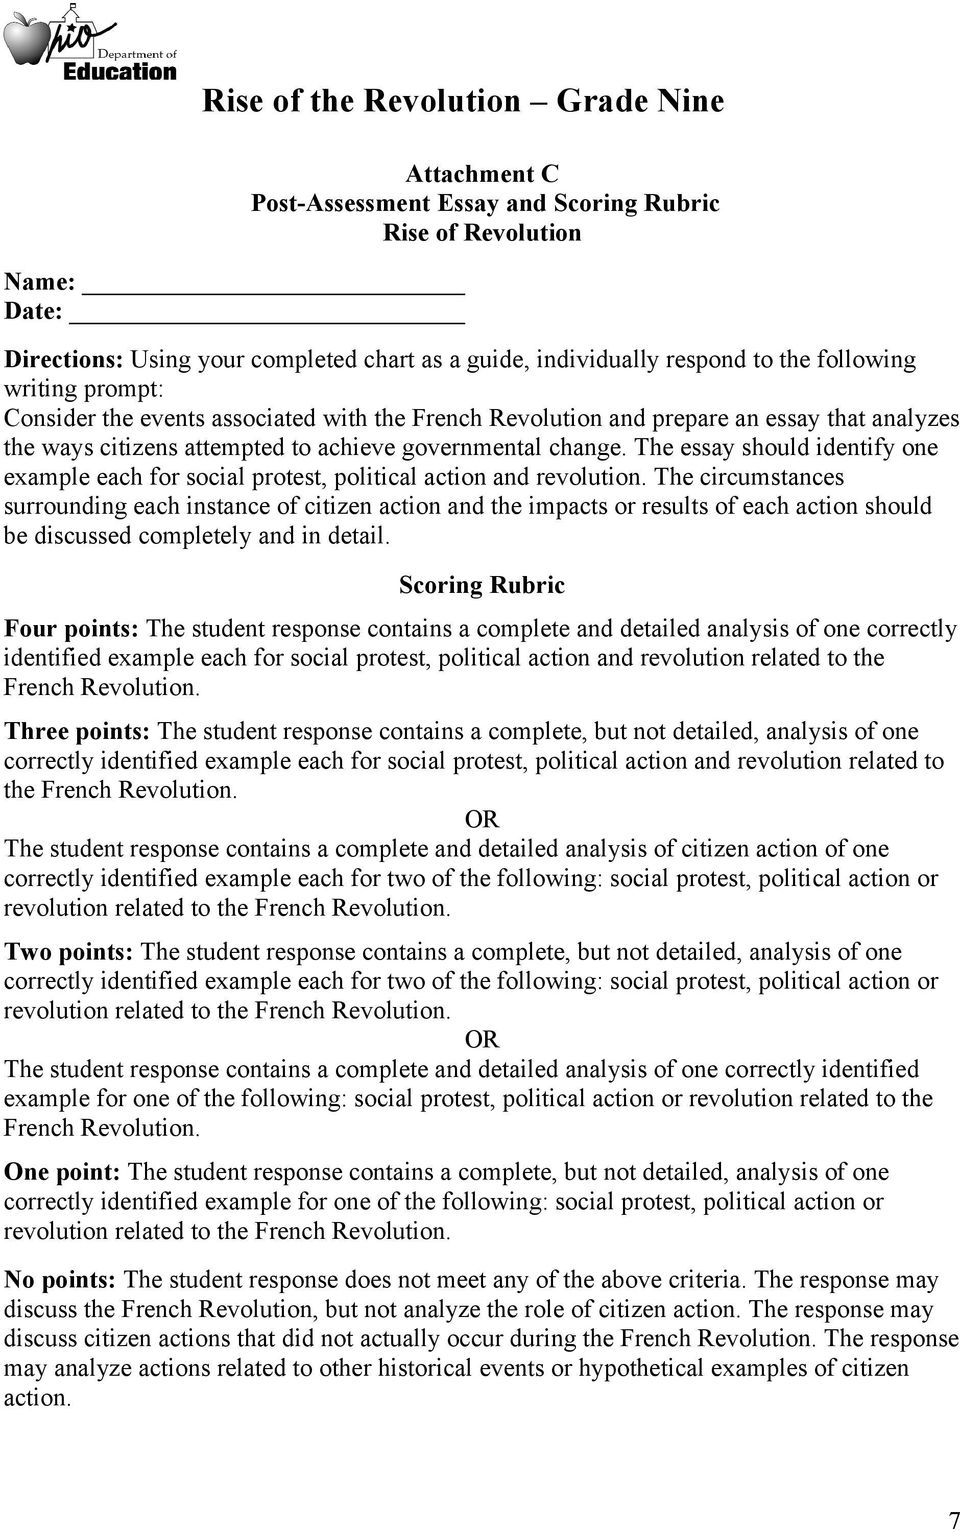 rise of the revolution grade nine pdf the essay should identify one example each for social protest political action and revolution